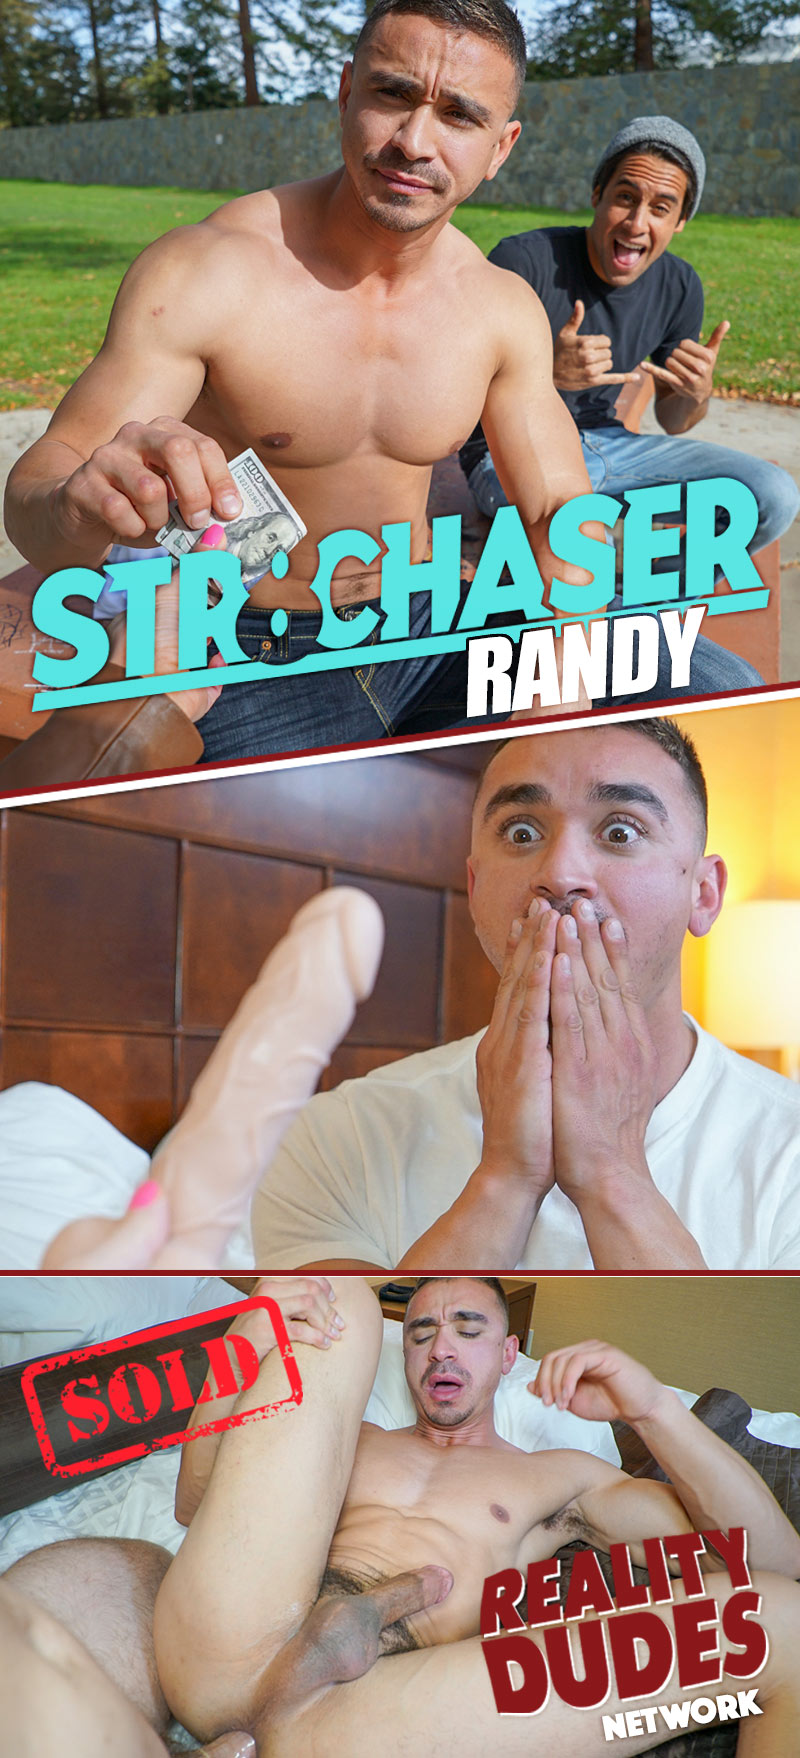 Randy Dixon (Bait and Switch 2) at Str8 Chaser